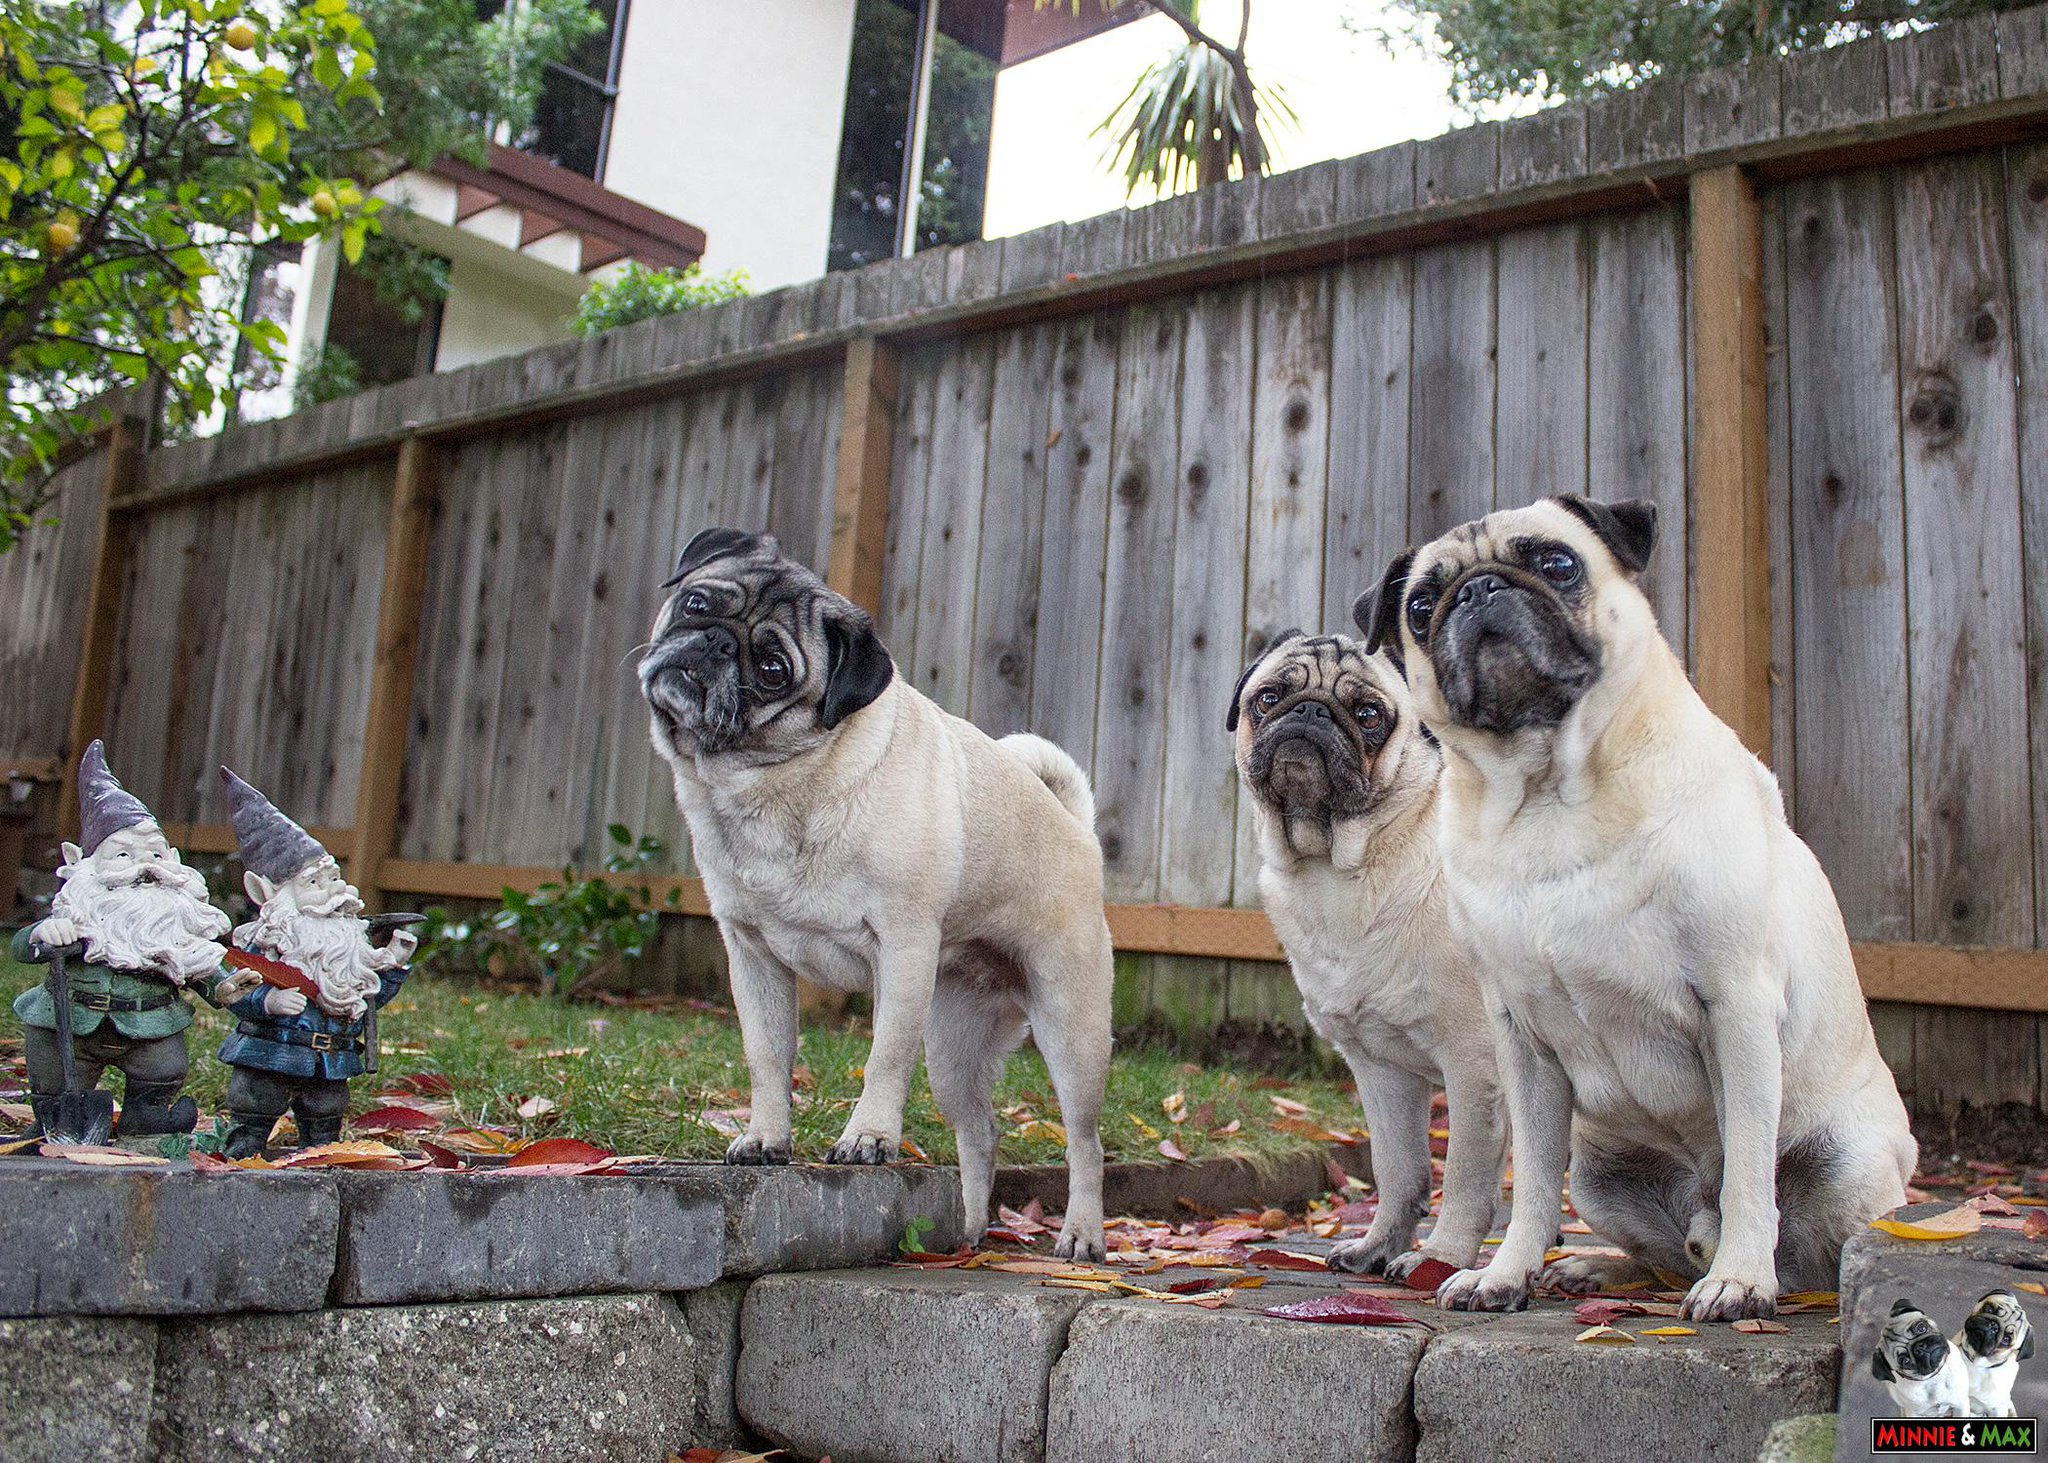 Yard (squirrel) patrol with our guest Louis. #pug #boss http://t.co/1thqtxKSjh